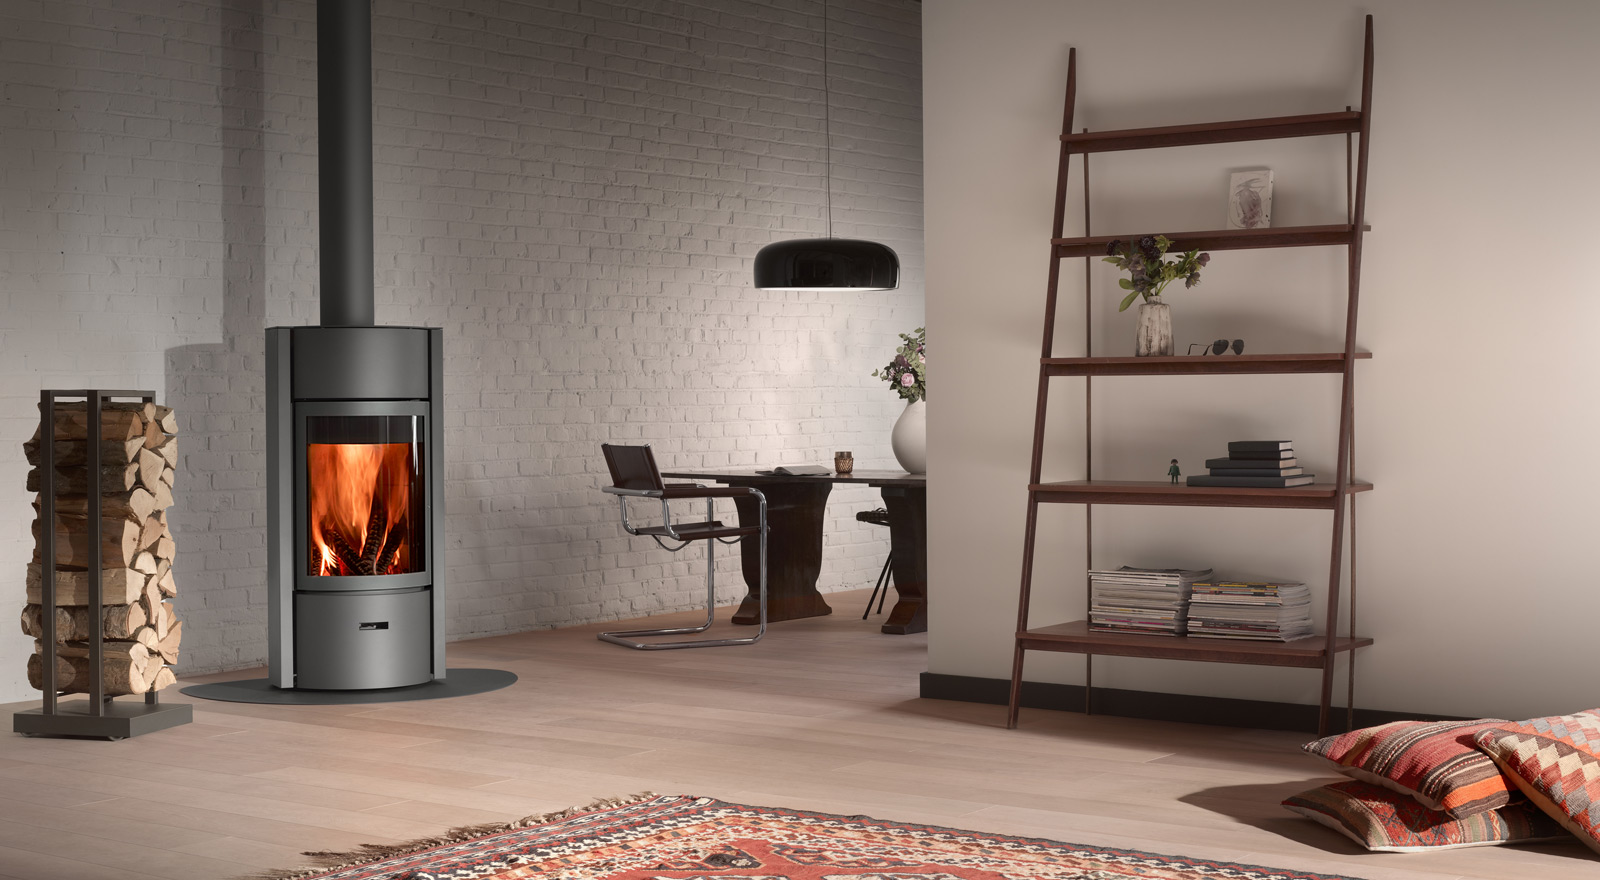 A revolutionary wood-burning stove